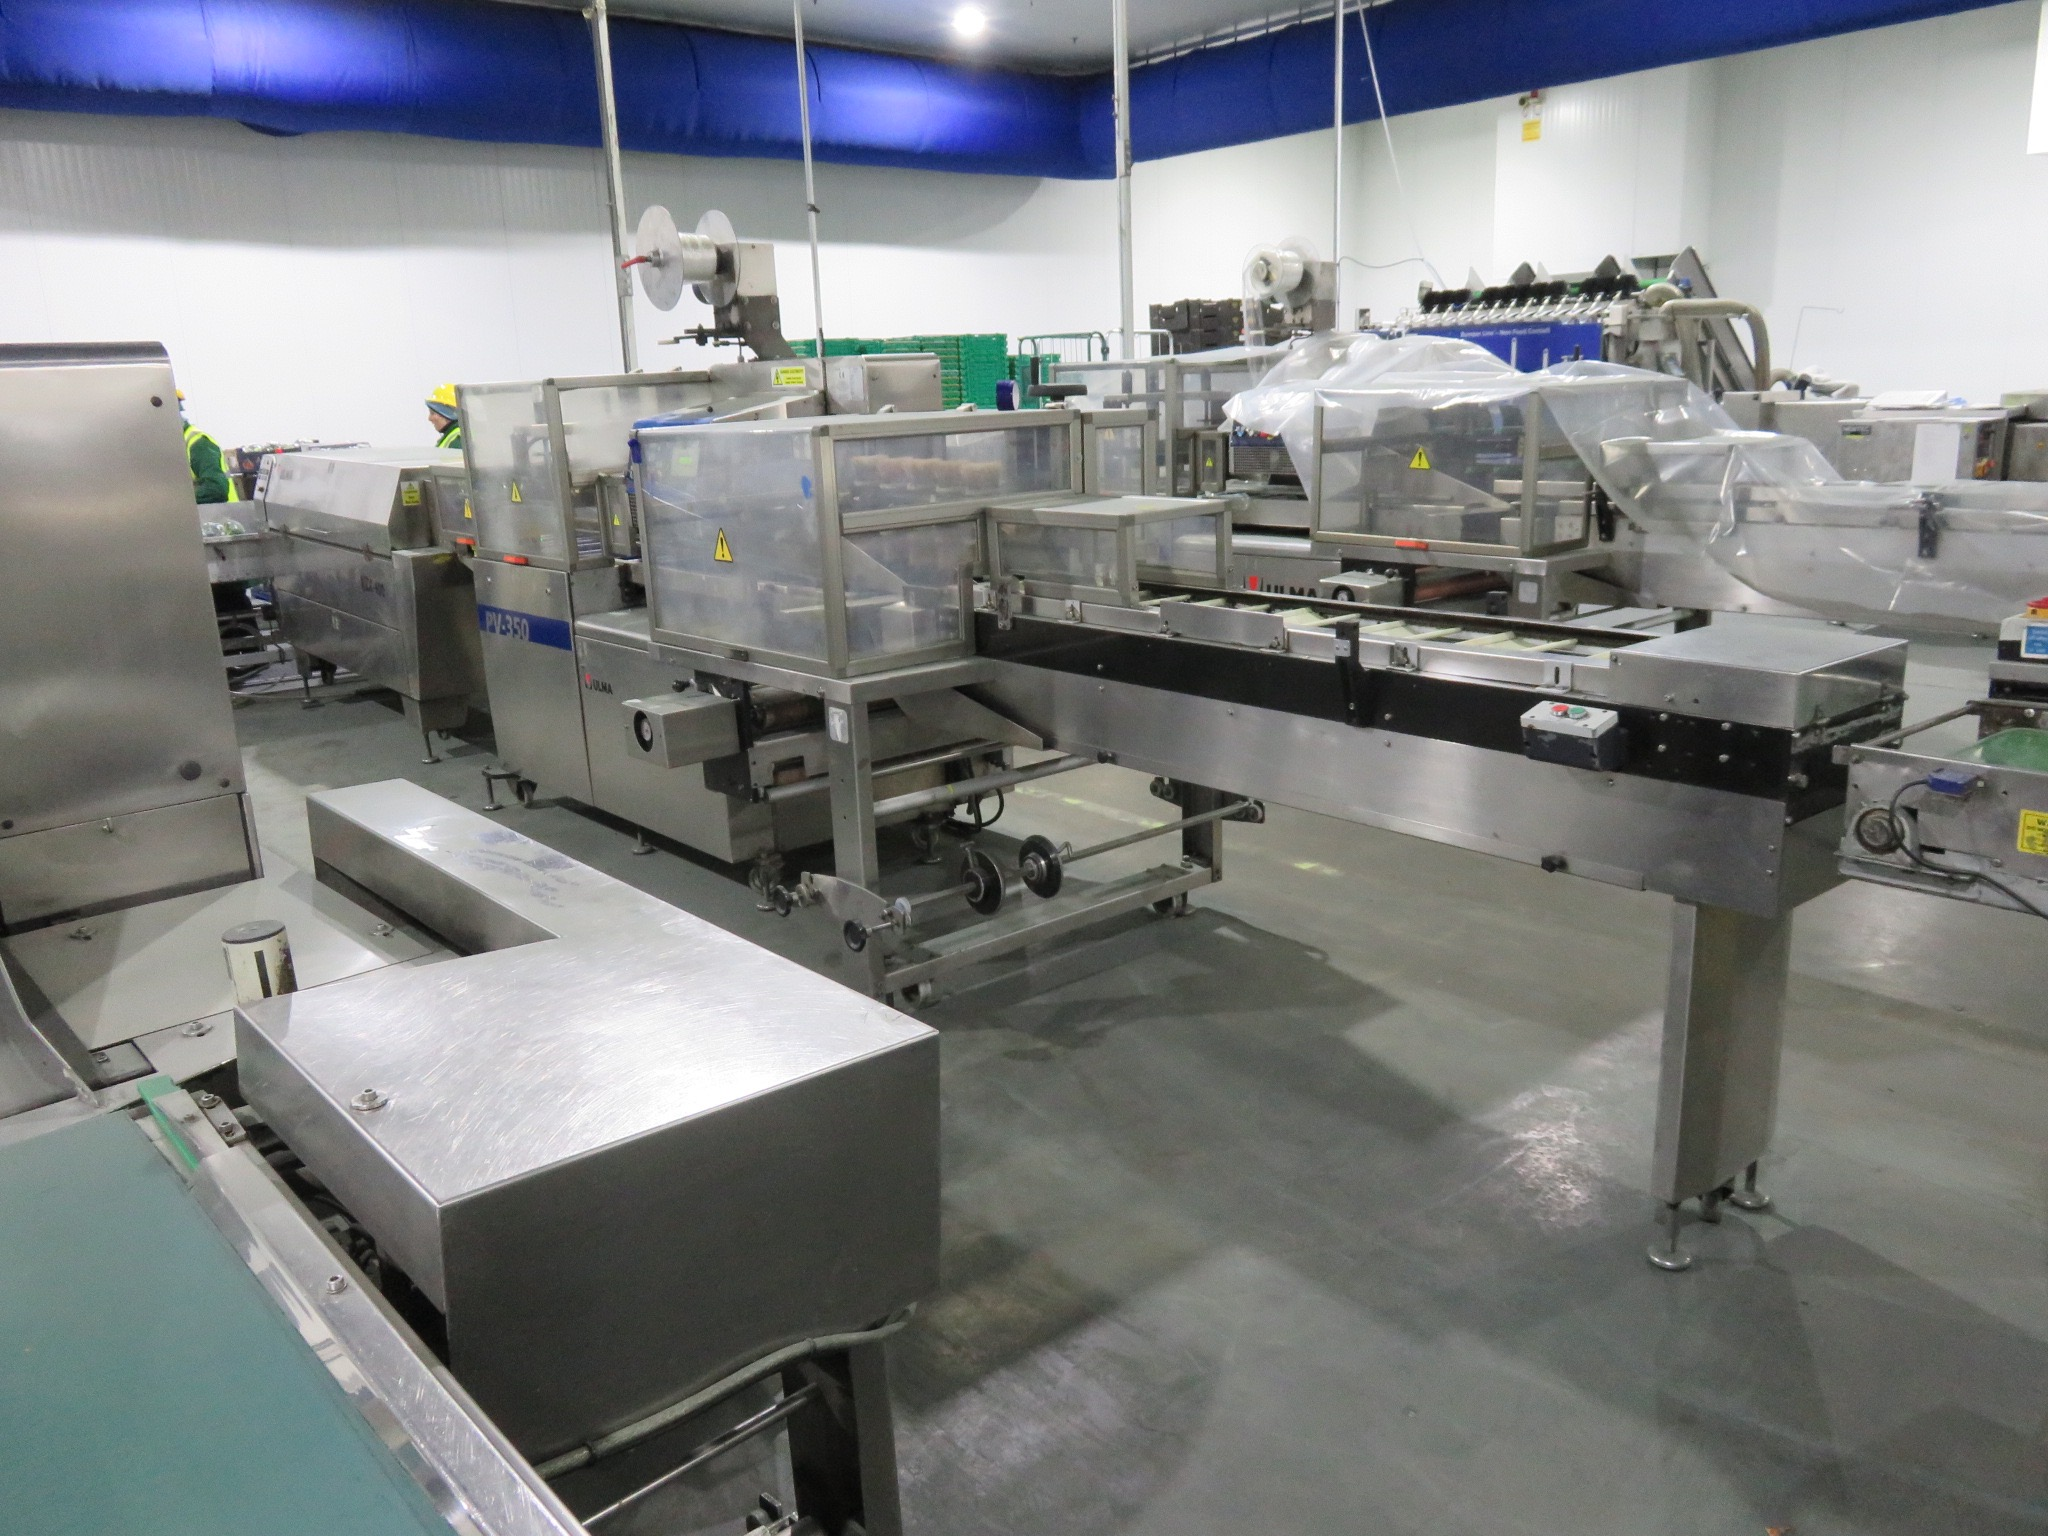 Lot 1 - **Video of the ULMA lines** This is not a lot